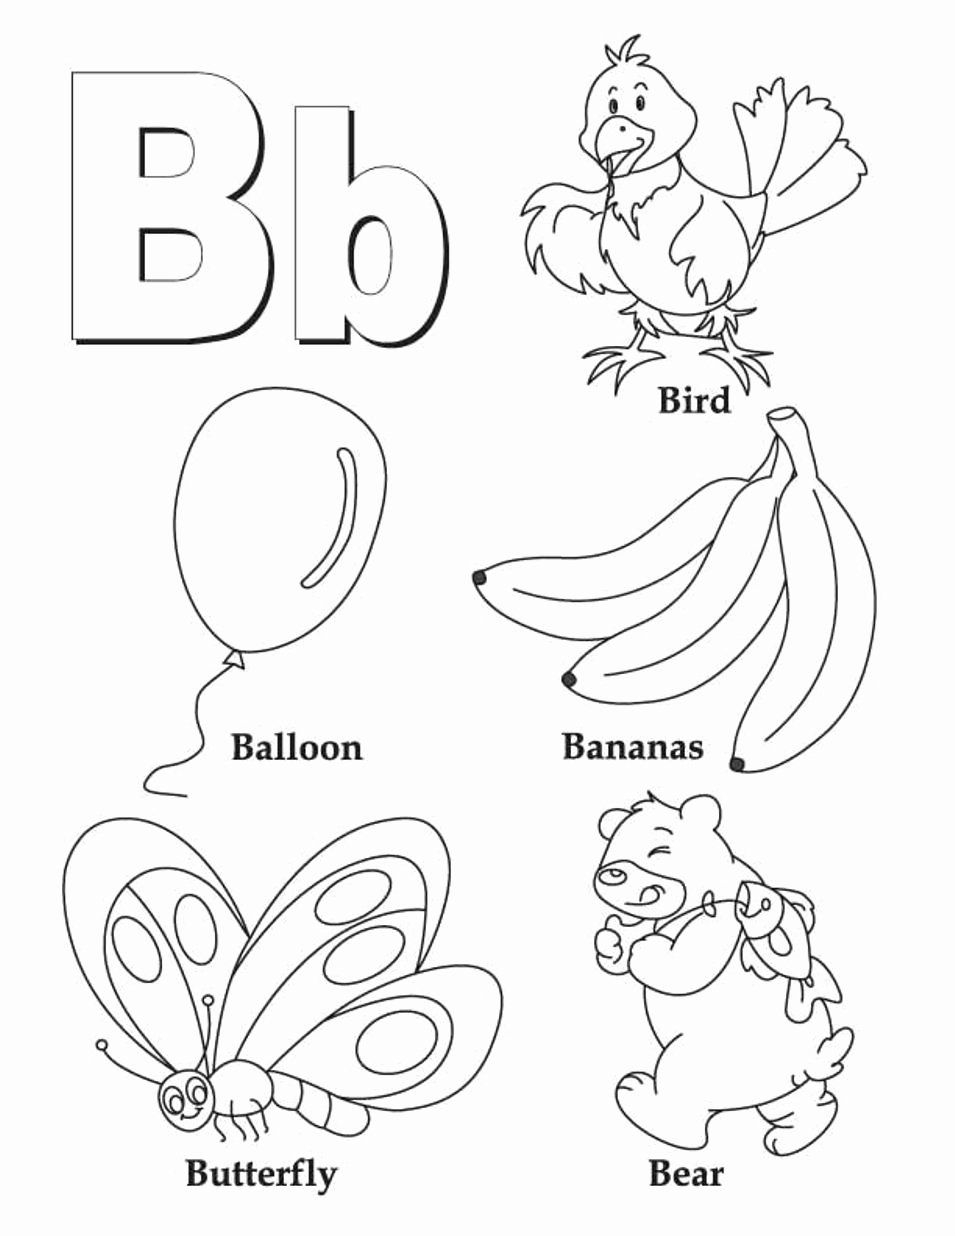 Letter A Coloring Pages Best Of Letter B Coloring Pages Preschool And Kindergarten In 2020 Letter A Coloring Pages Letter B Coloring Pages Alphabet Coloring Pages